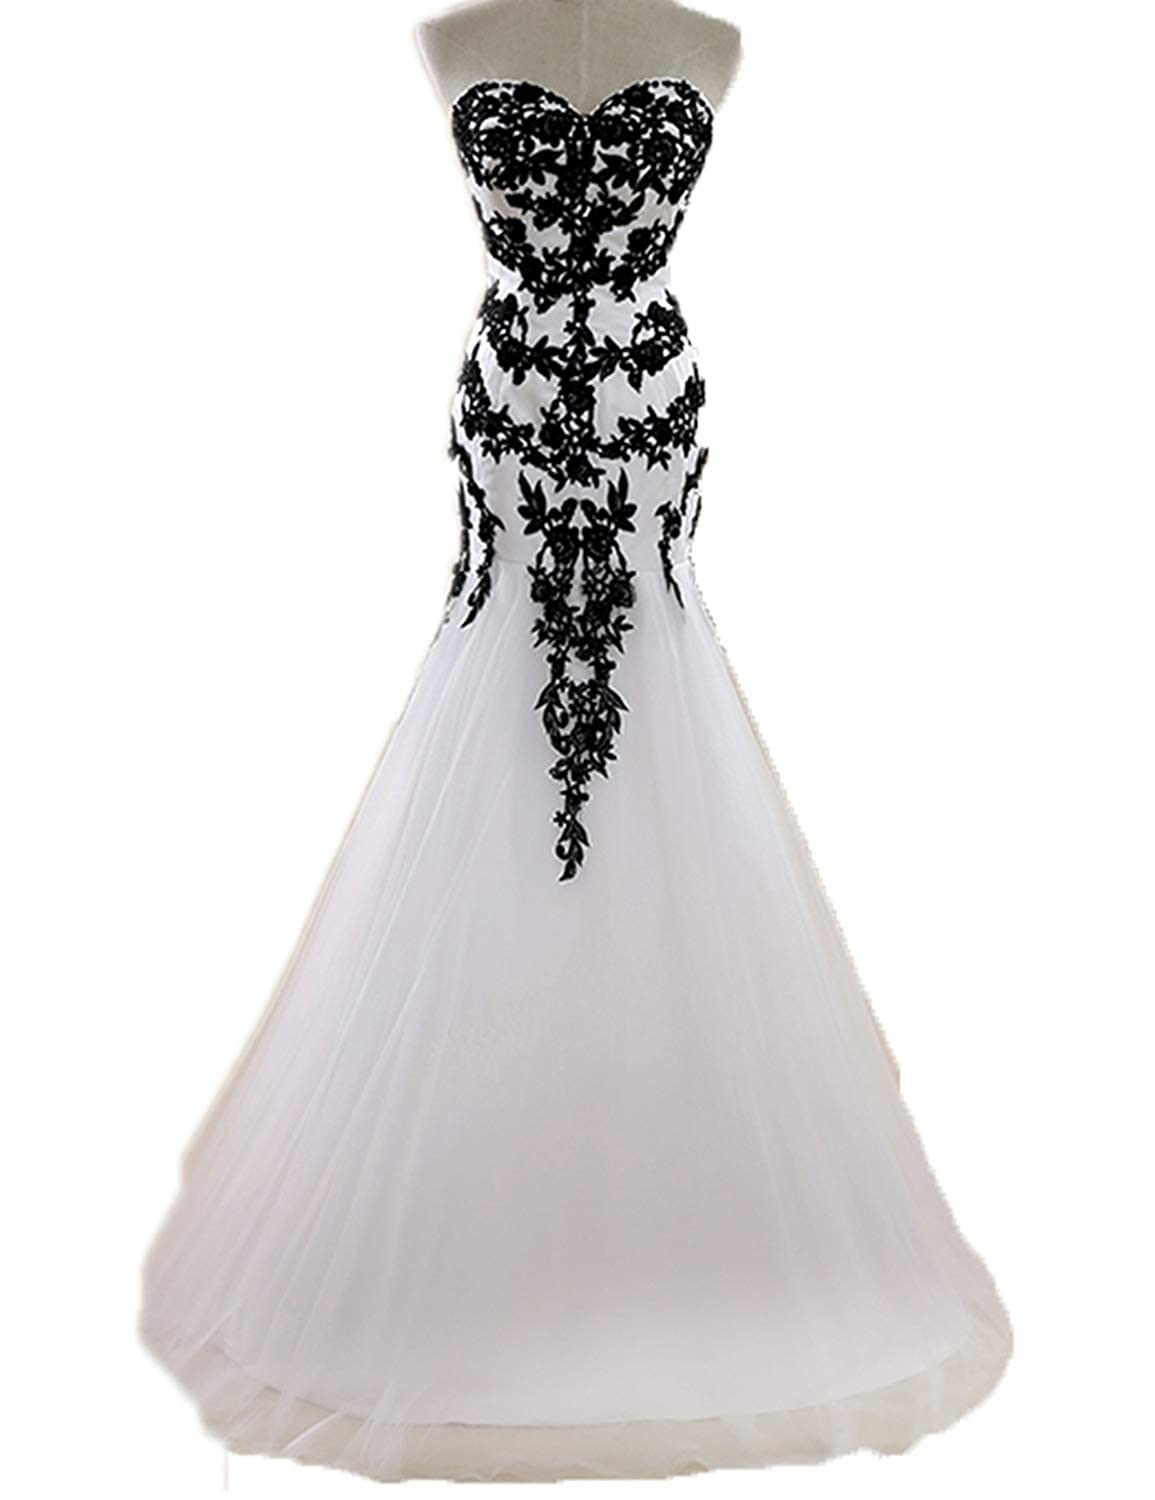 Joyvany Lace Applique Black And White Wedding Dress Tulle Long